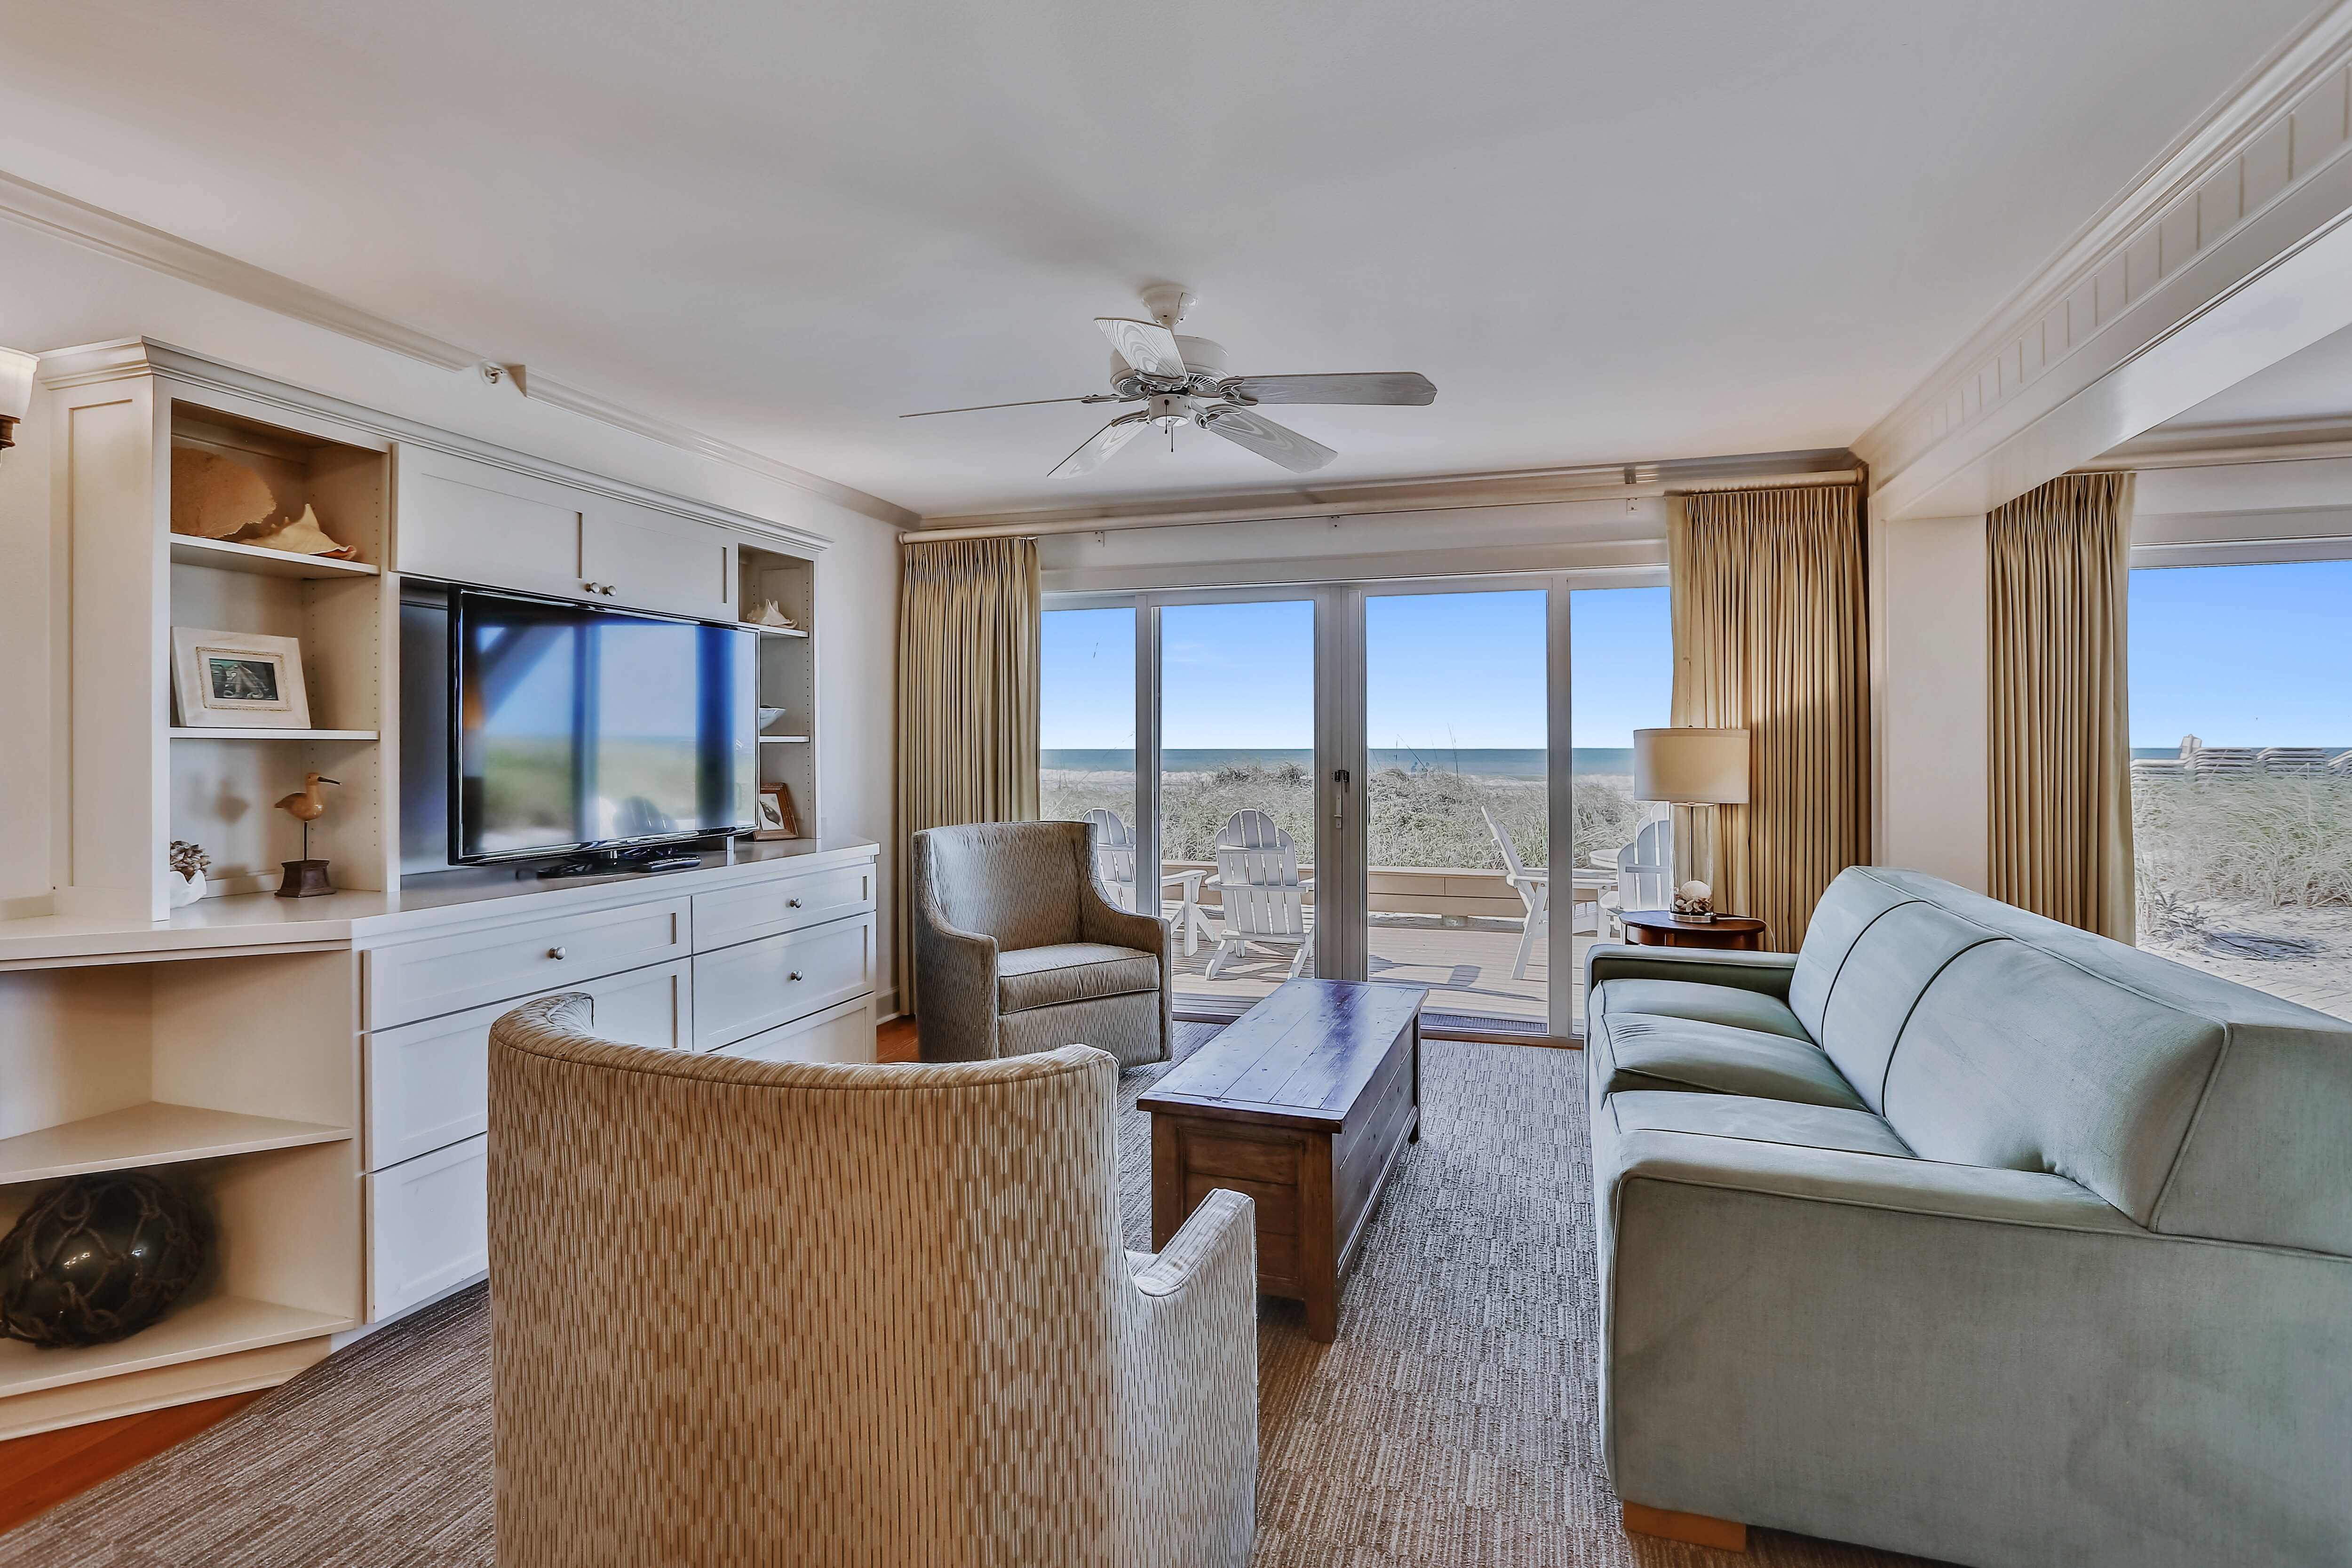 Property Image 1 - Stunning Beach Front Condo with Panoramic Views